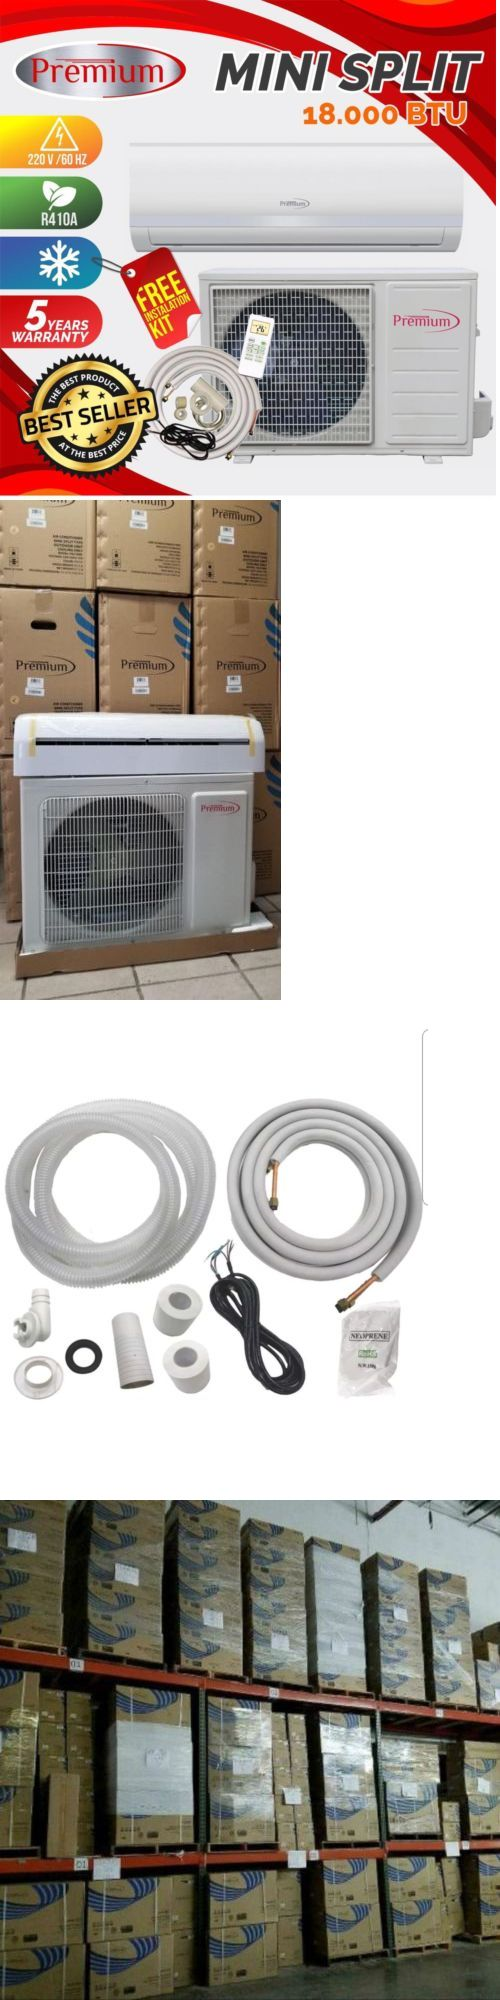 Central Air Conditioners 185108 Premium Mini Split Ac System Ductless 18000 Btu 1 5 Ton Only Cold 220v Buy It Now Split Ac System Mini Split Ac Ac System